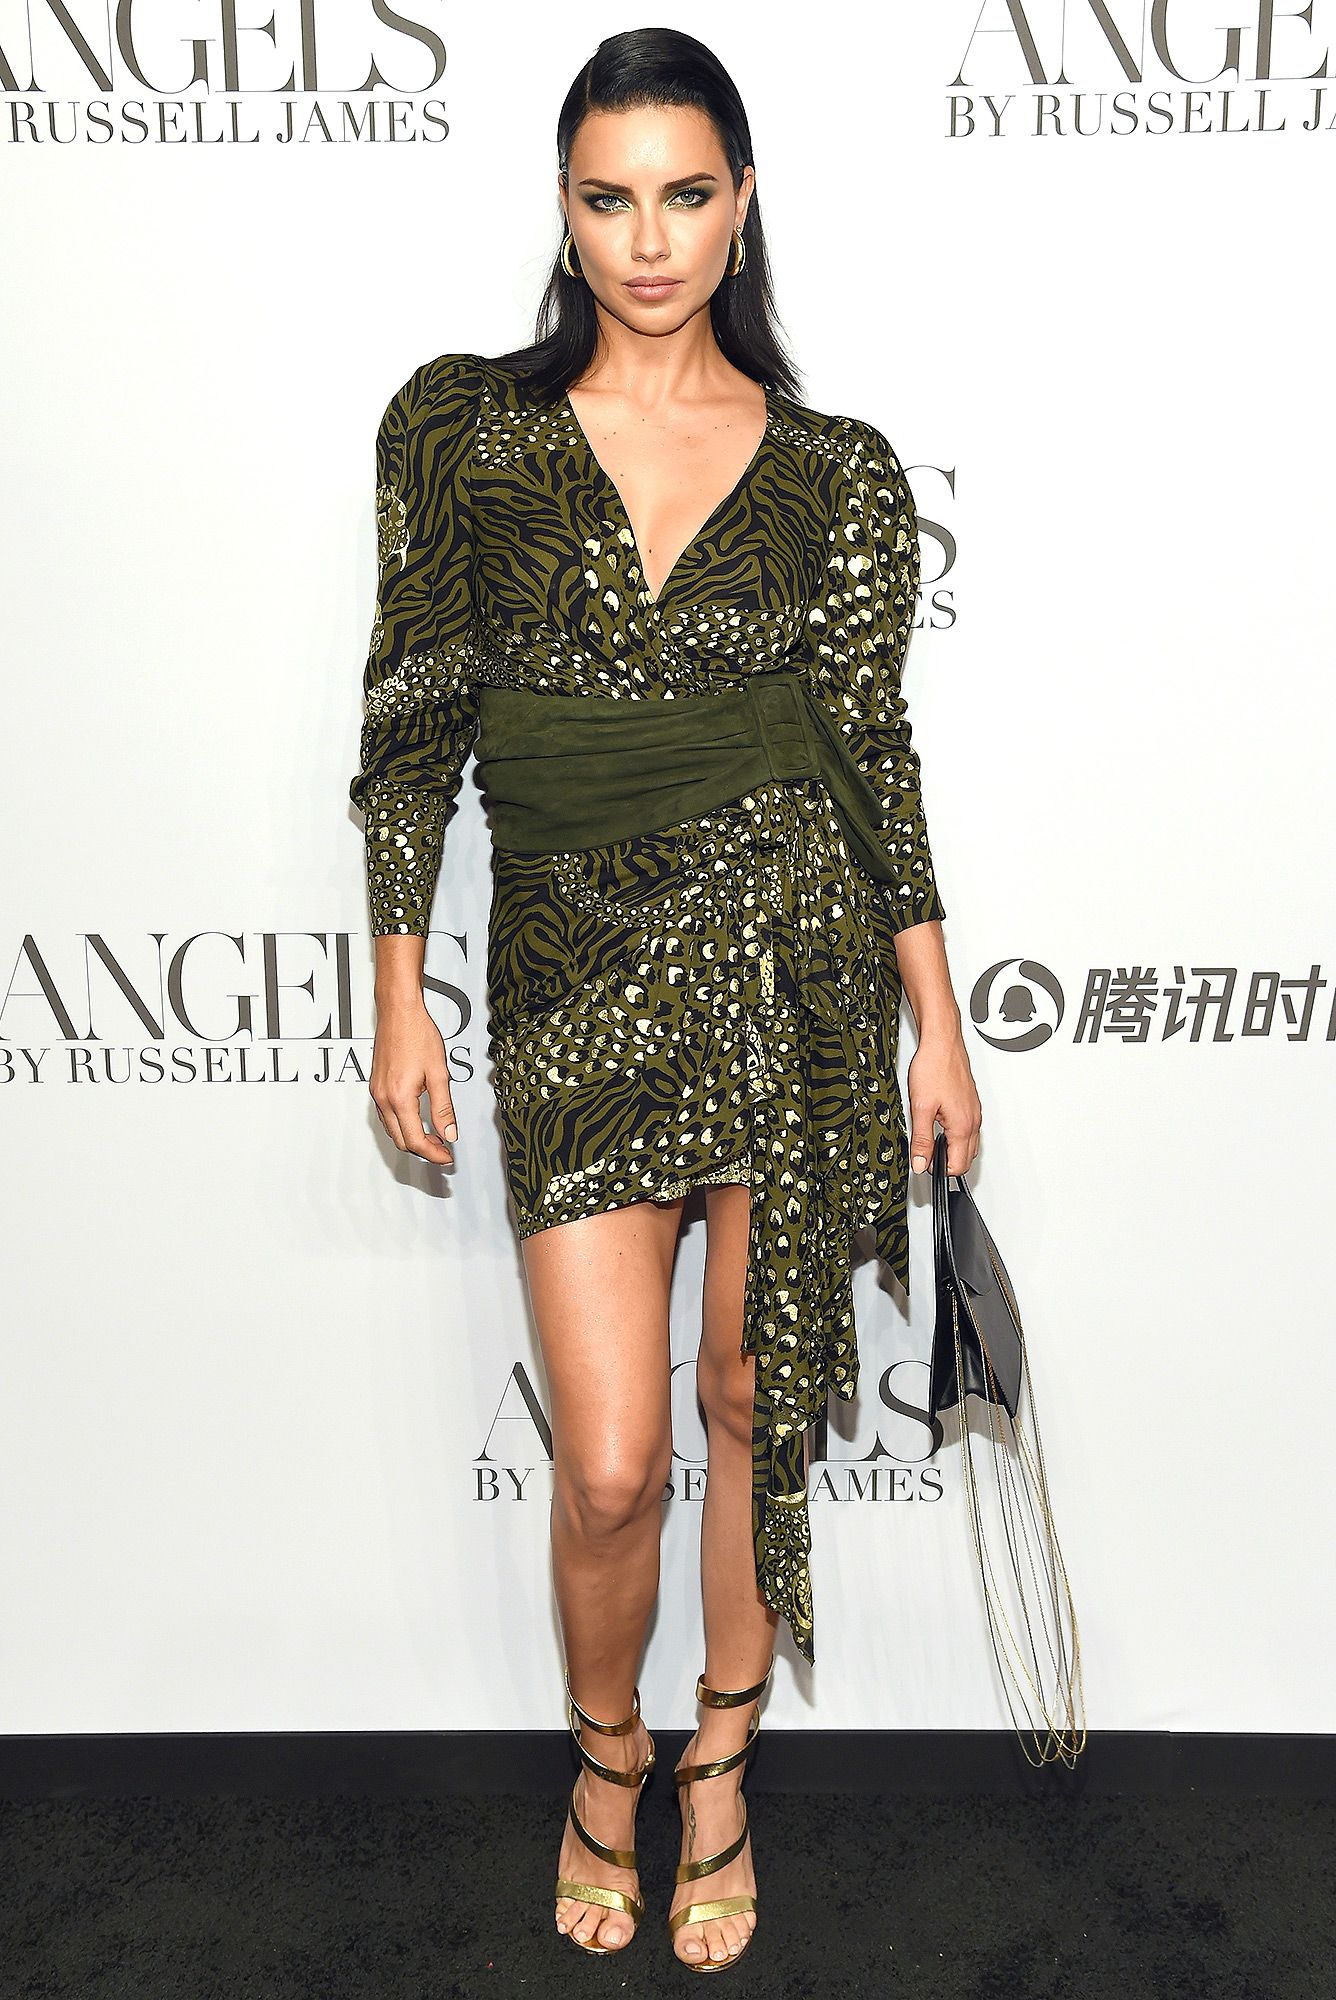 Adriana Lima wears an olive green leopard-print mini dress and ankle-wrap  gold sandals at the ANGELS by Russell James book launch and exhibit in  N.Y.C. e386abf72